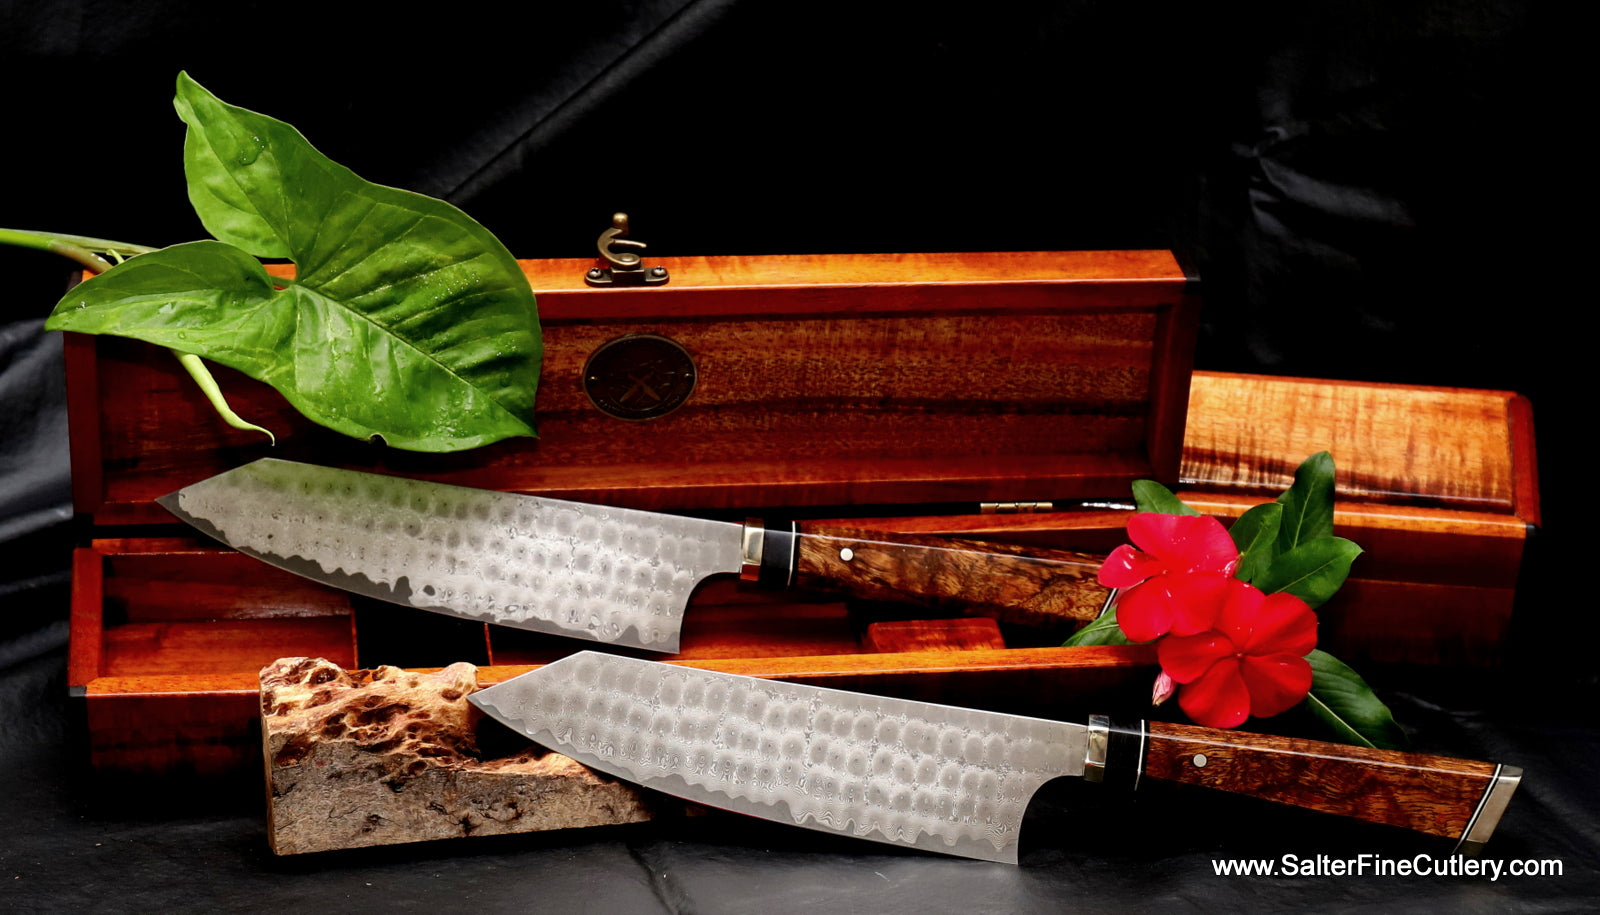 Pair of 180mm custom Salter exclusive design bunka knives in keepsake boxes